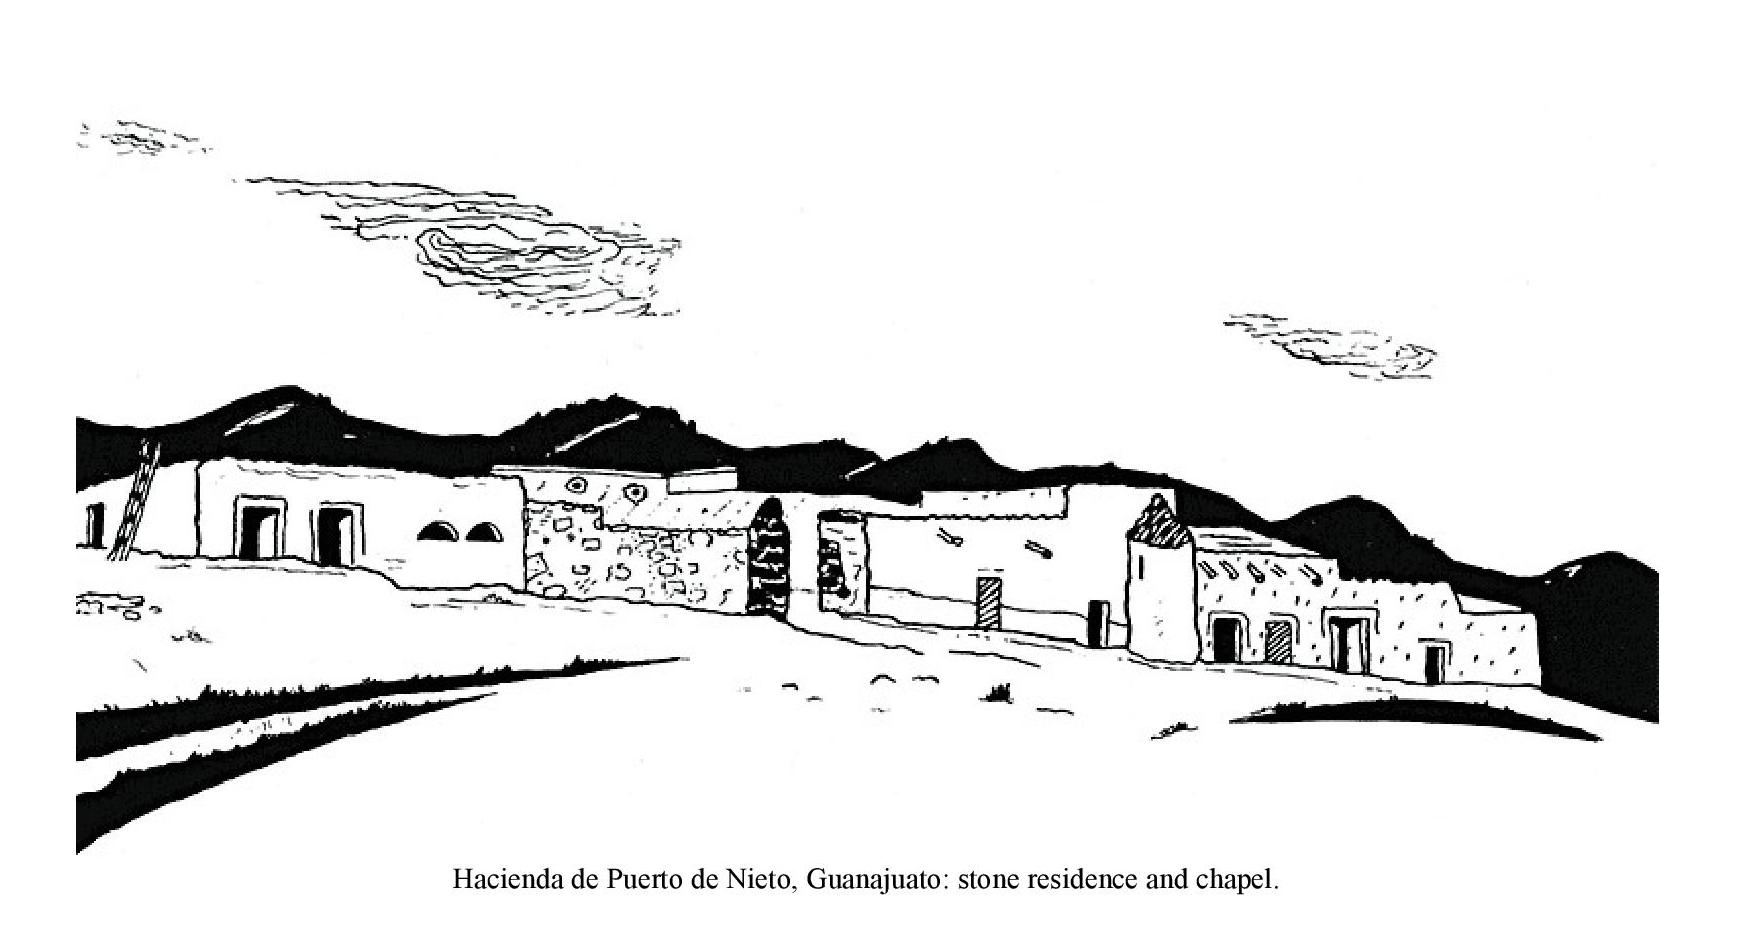 The Project Gutenberg E-text of The Haciendas of Mexico